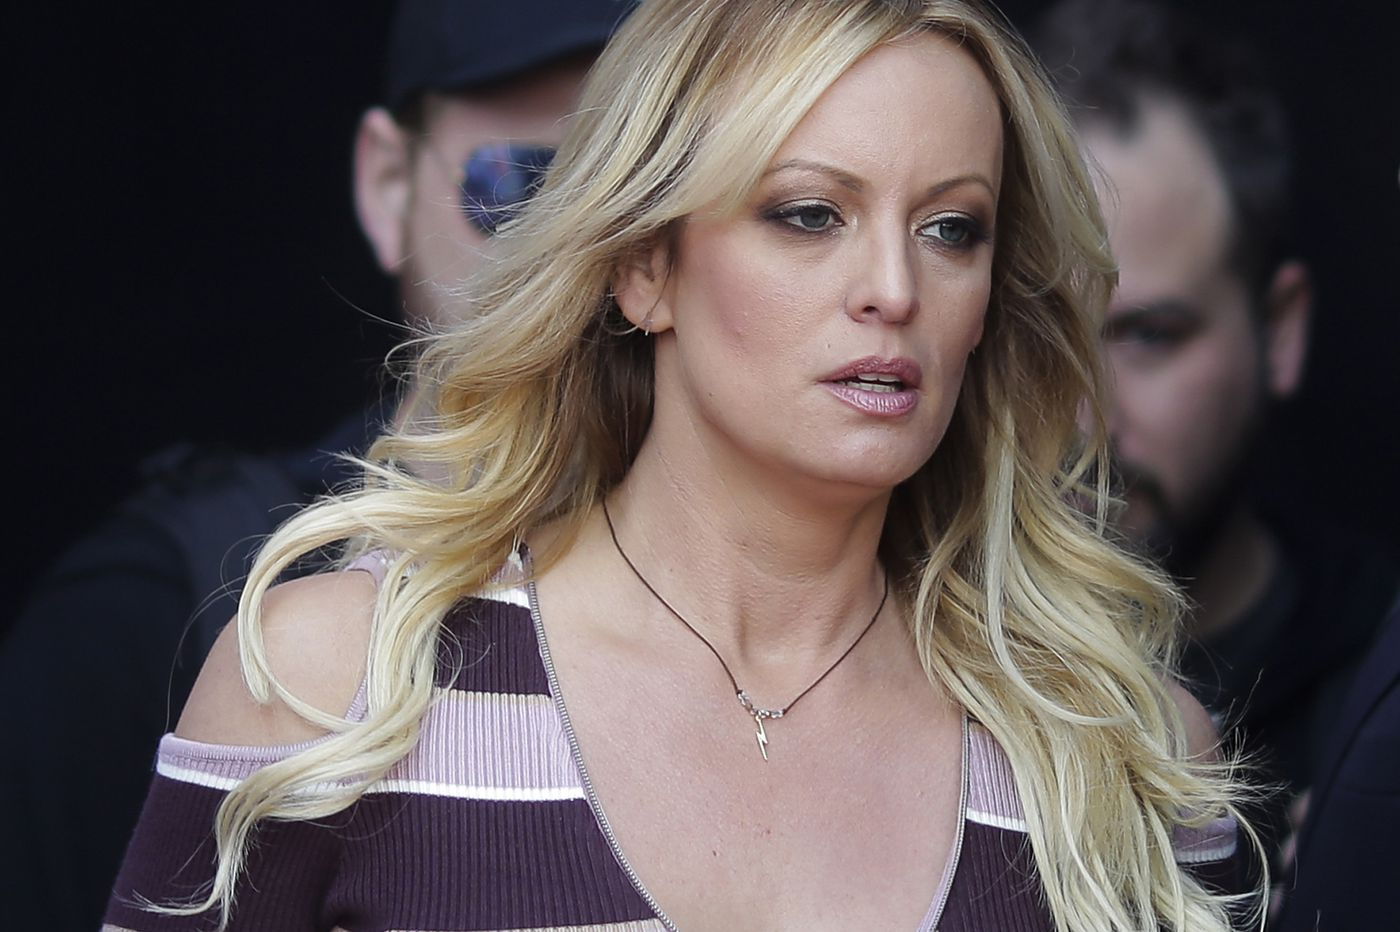 Stormy Daniels Files Lawsuit Claiming Ohio Strip Club Arrest Was 'Politically Motivated'